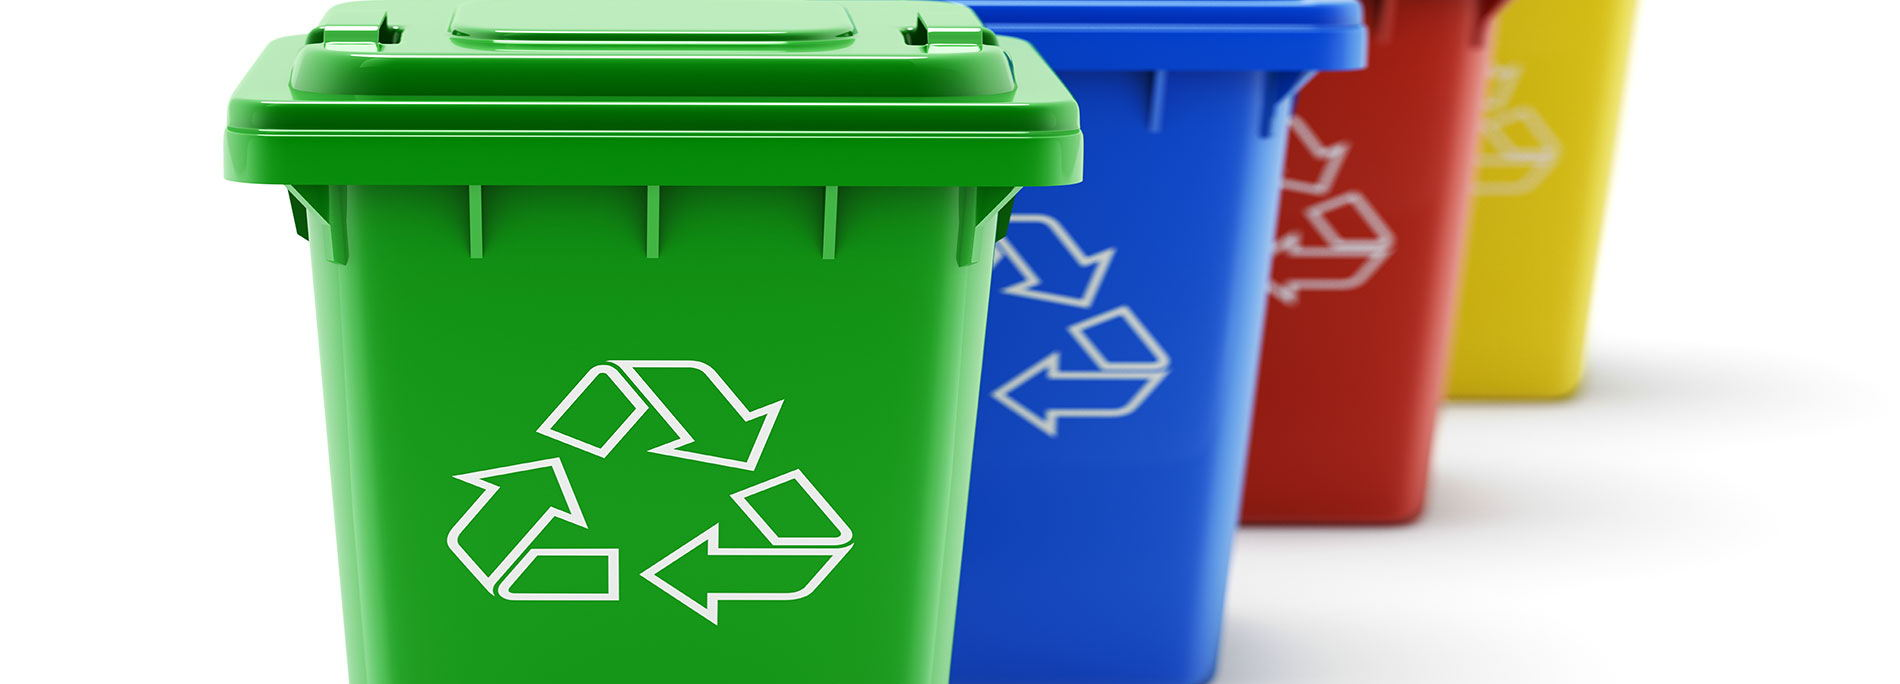 Recycling-Page-header.jpg